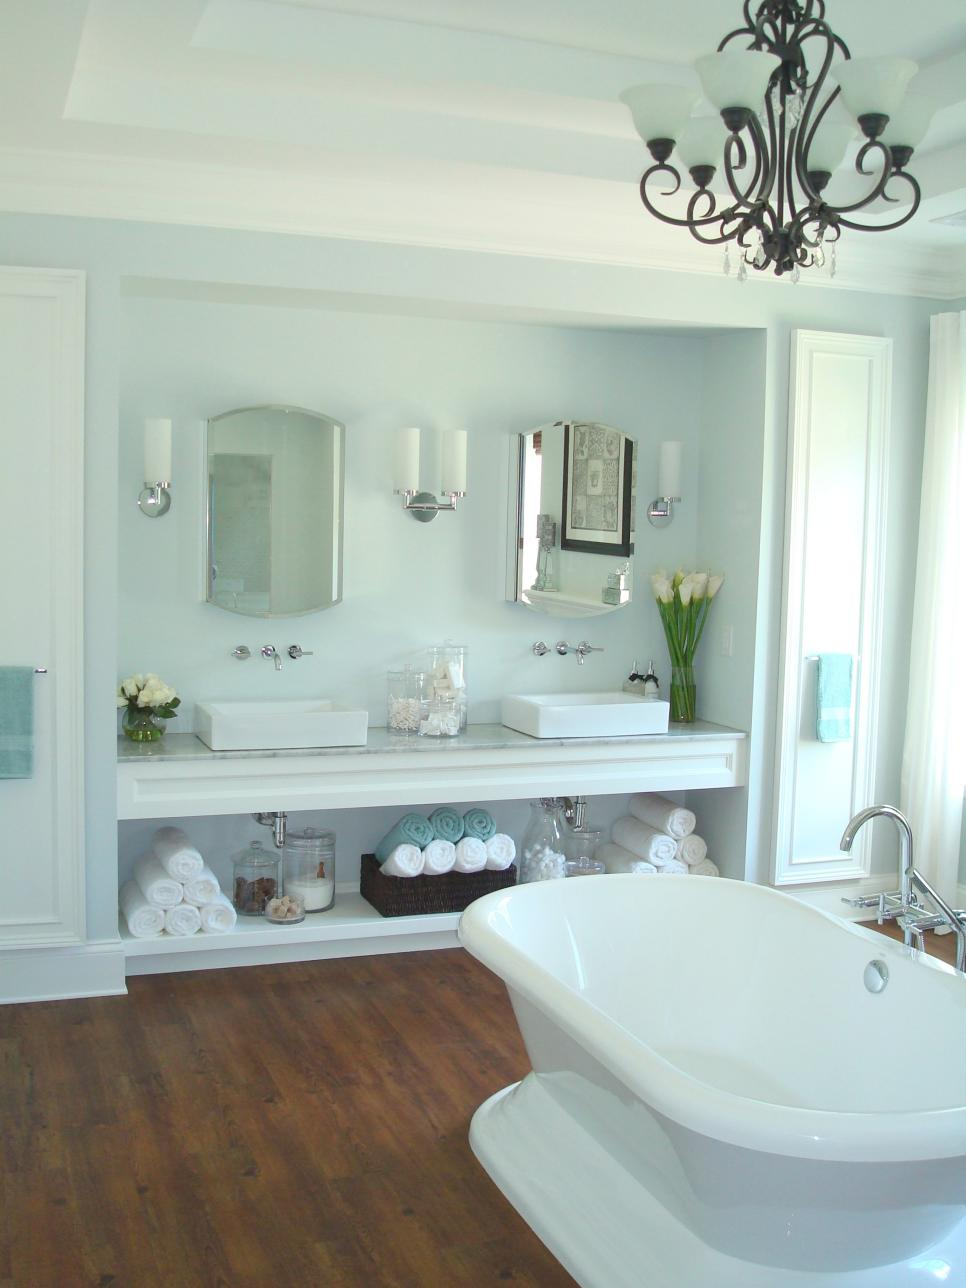 The best bathroom vanity ideas midcityeast for White bathroom ideas